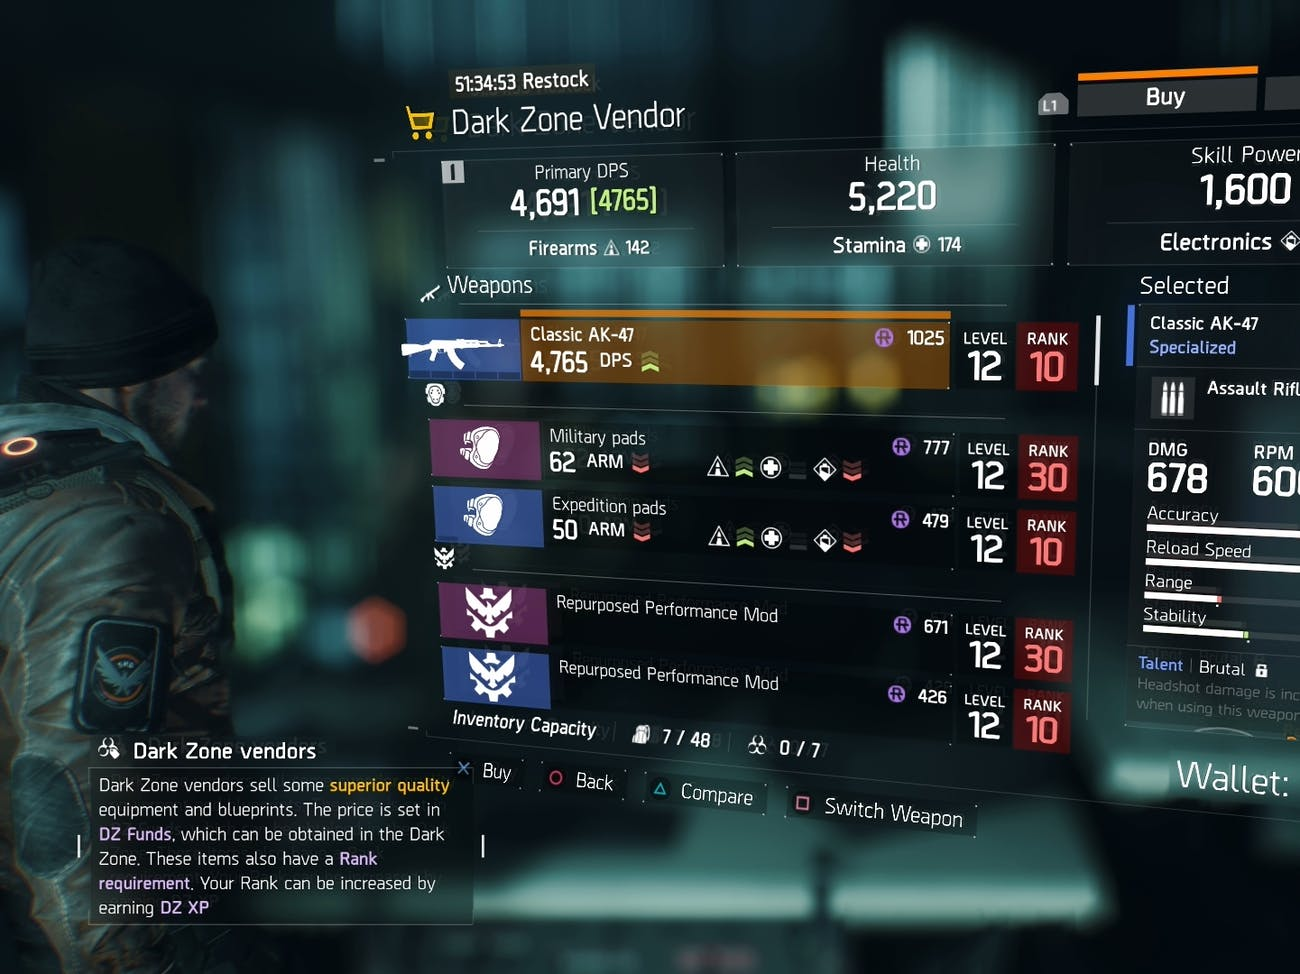 Tips for Starting 'The Division', The Newest Tom Clancy Game | Inverse